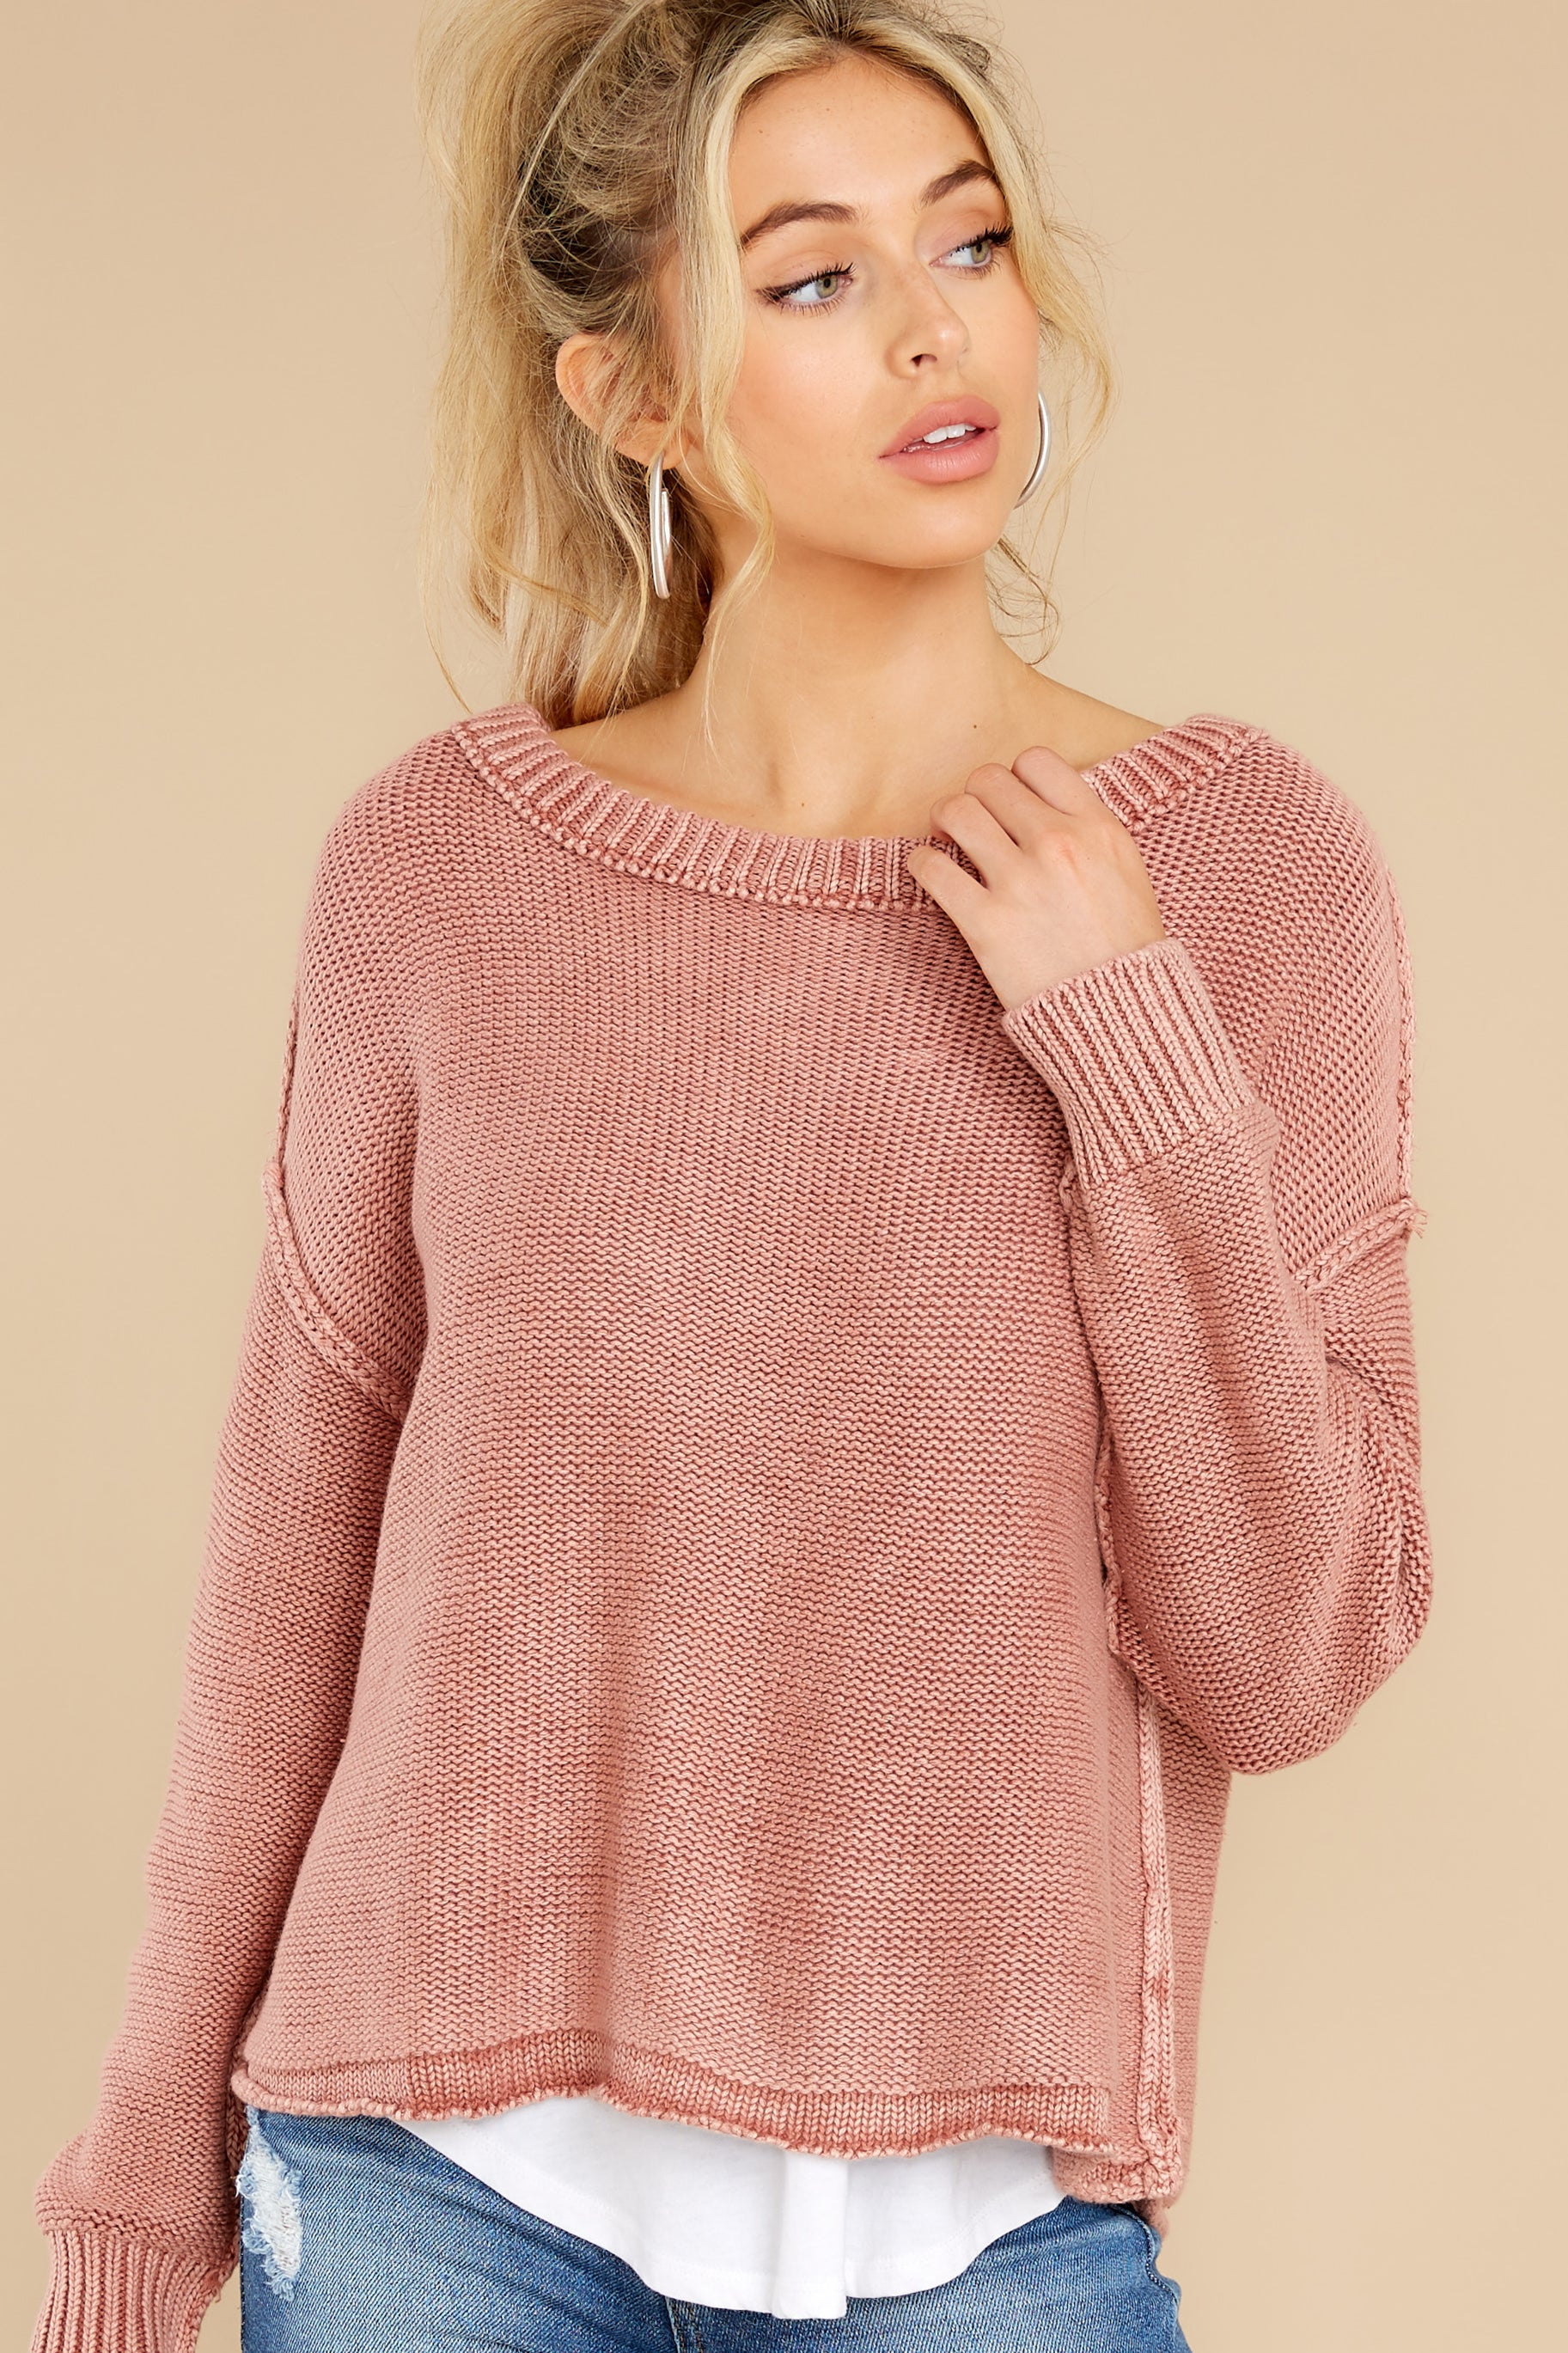 7 All Your Love Dusty Rose Sweater at reddress.com